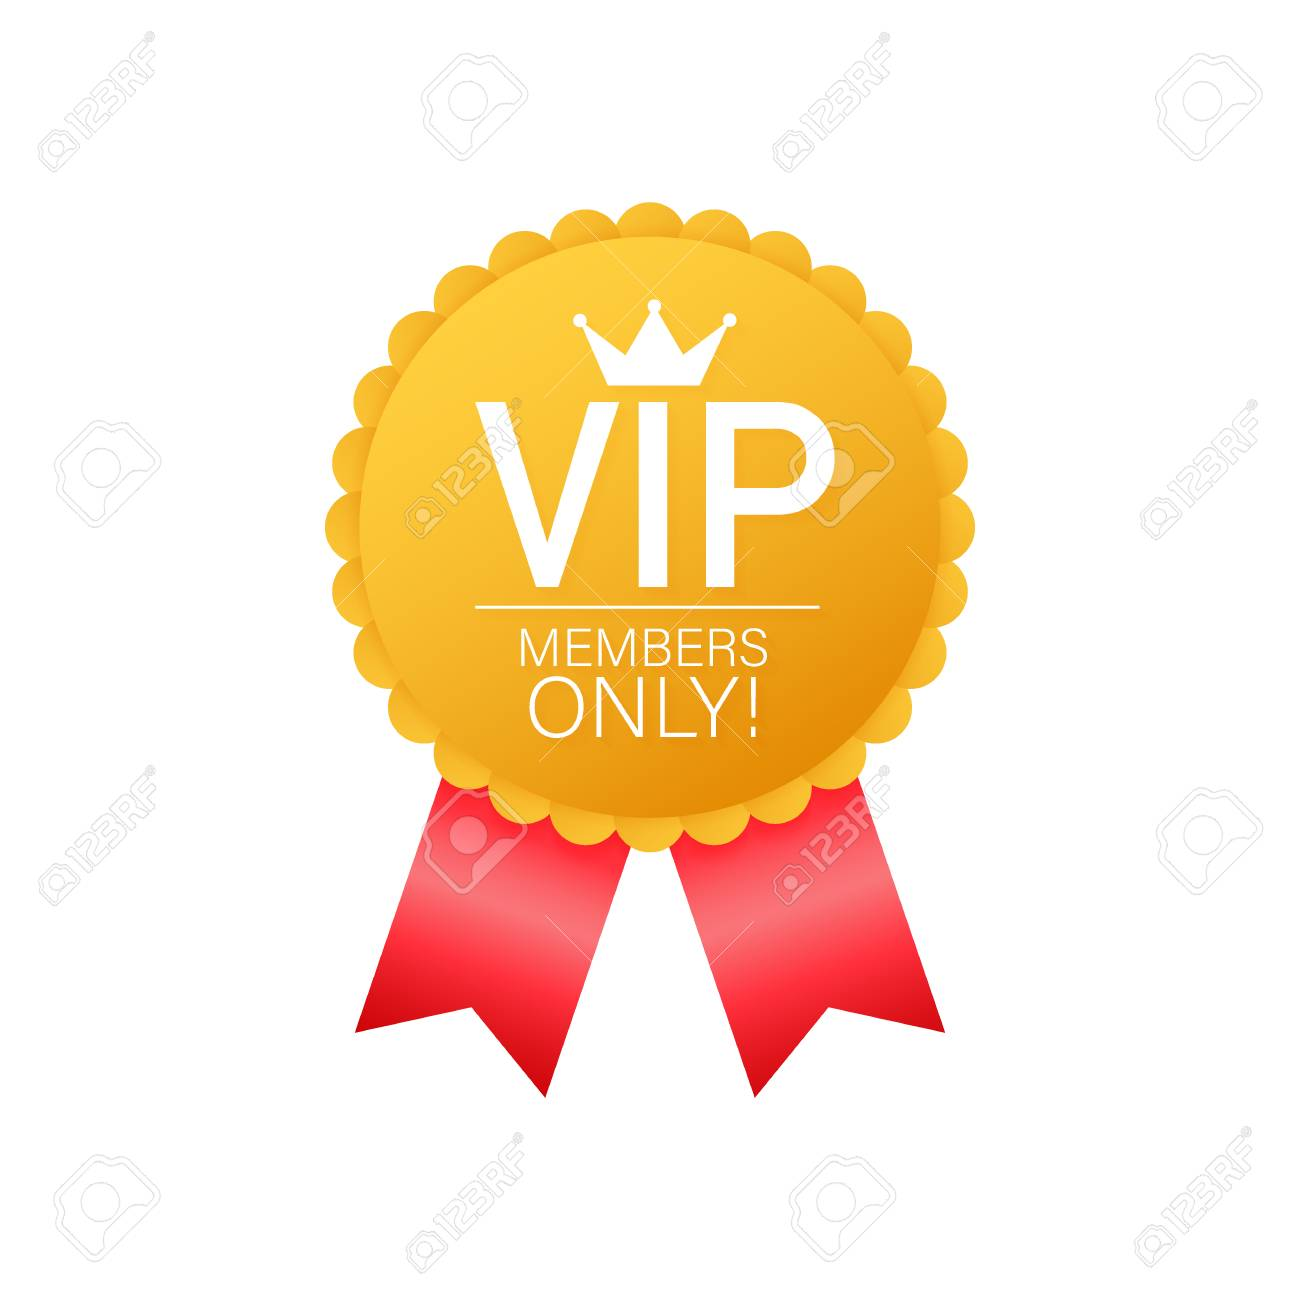 VIP, Members Only Gold ribbon, label  Gold and luxury, membership